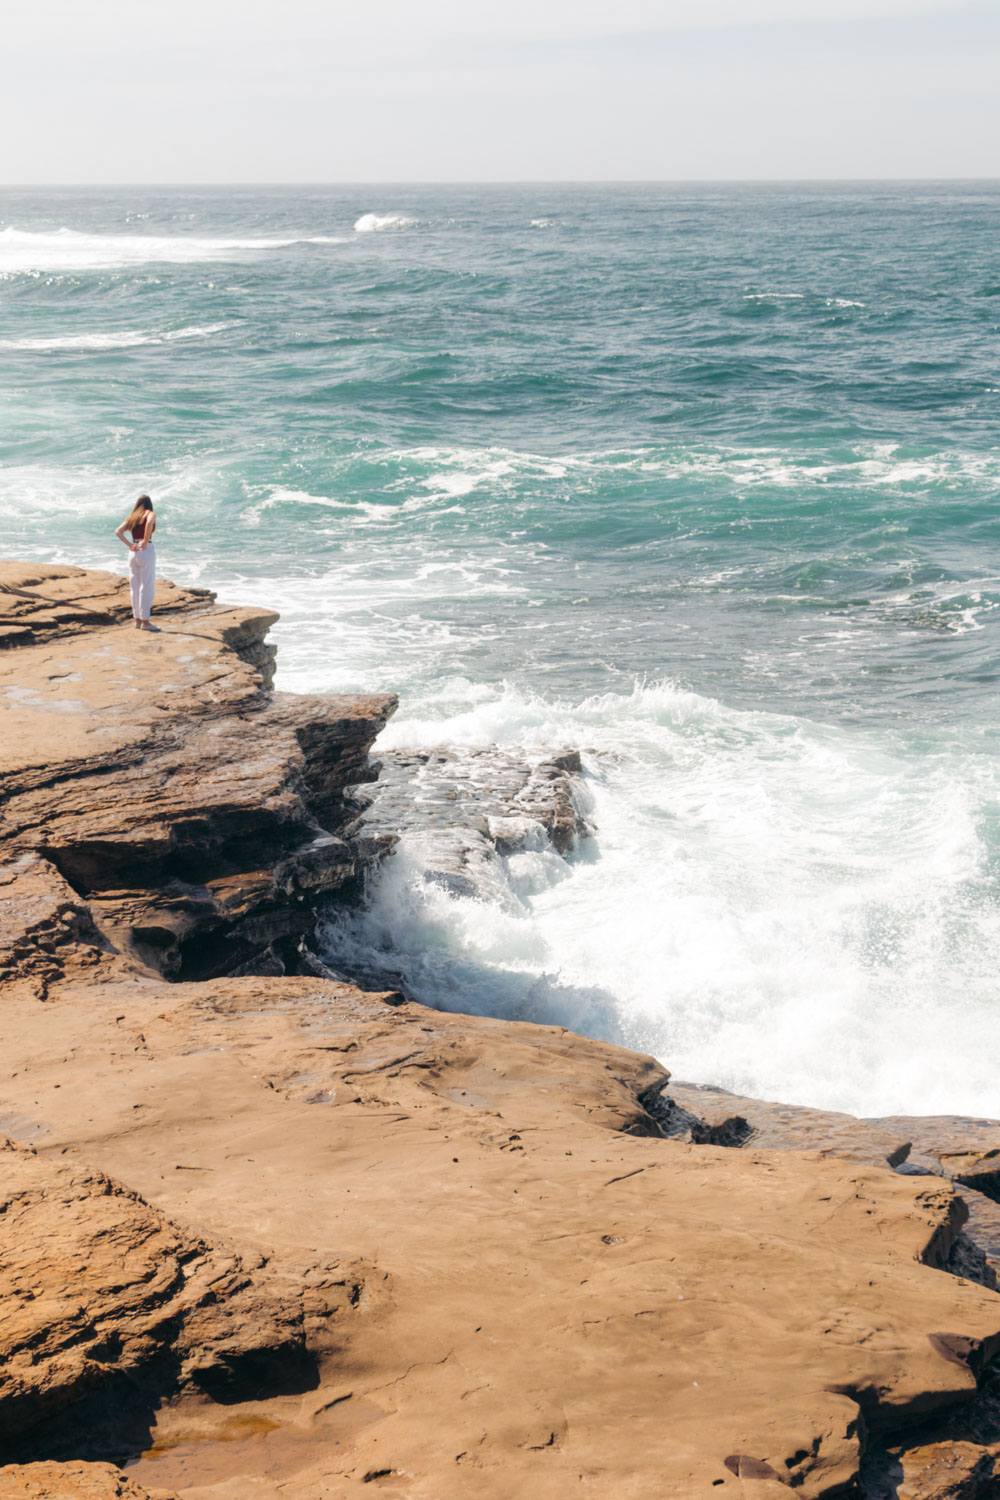 Day Trips from San Diego - Roads and Destinations, roadsanddestinations.com